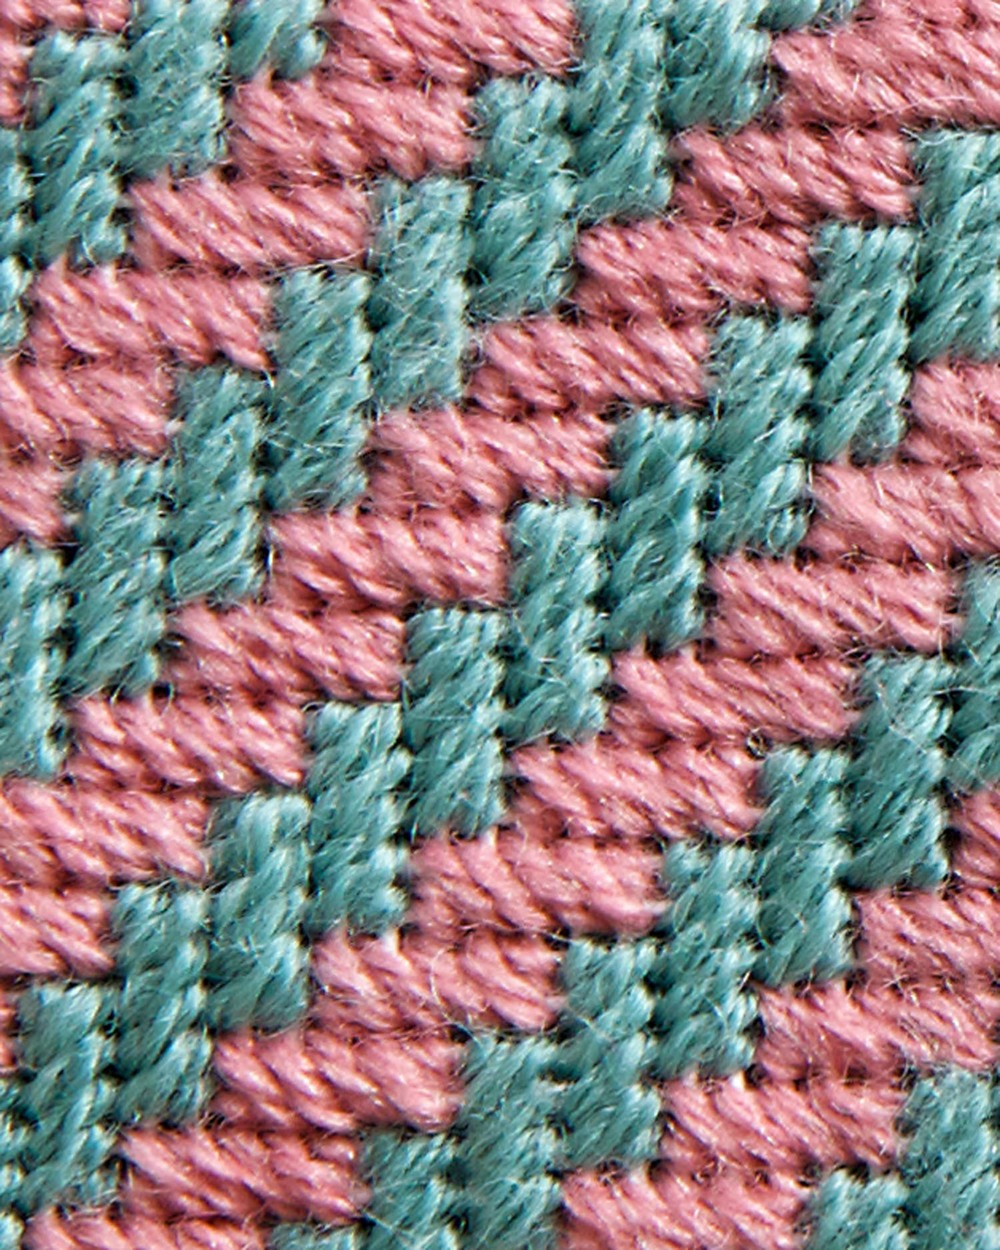 Stitch 35 - Diagonal Hedge Row